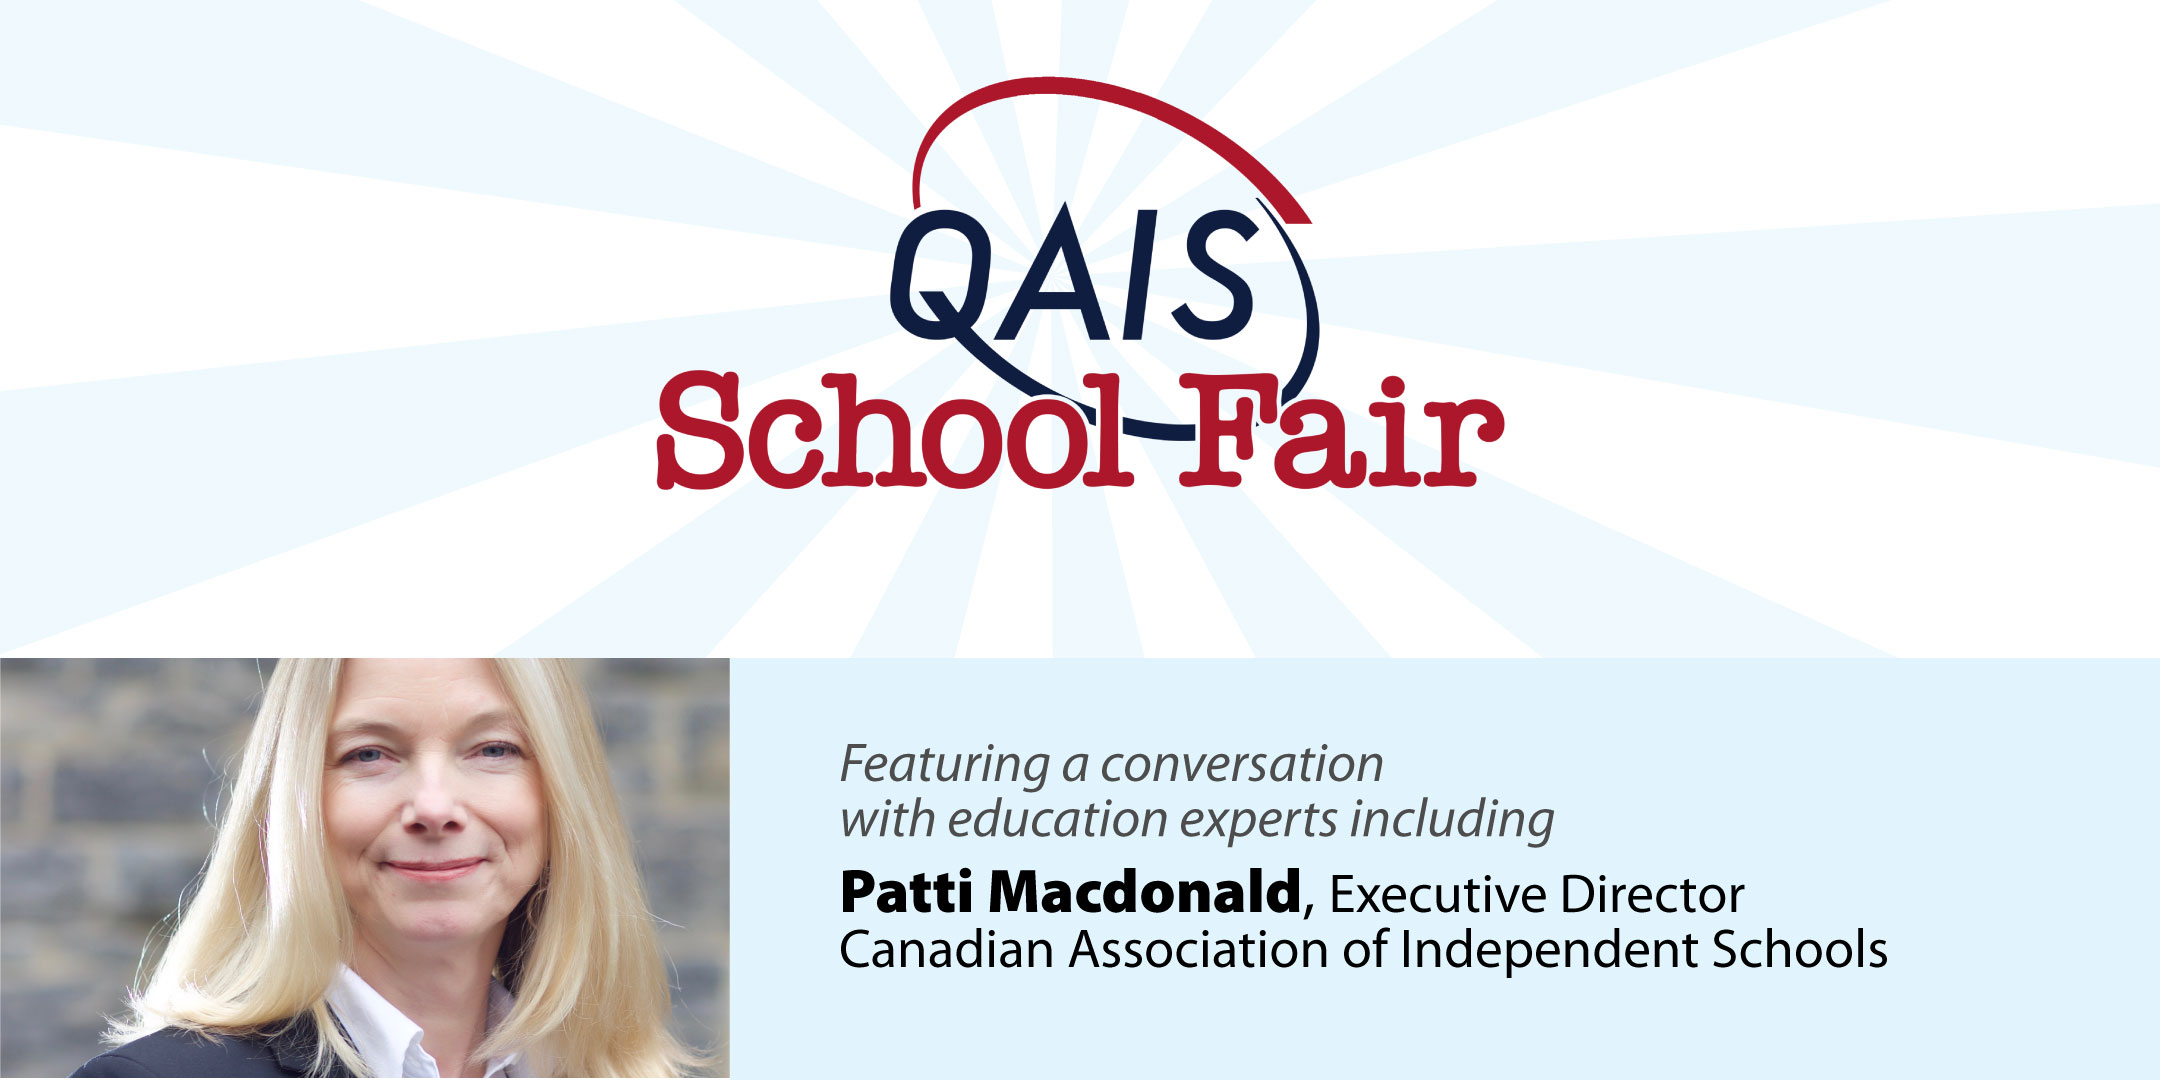 Banner QAIS logo and image of Patti Macdonald, guest speaker